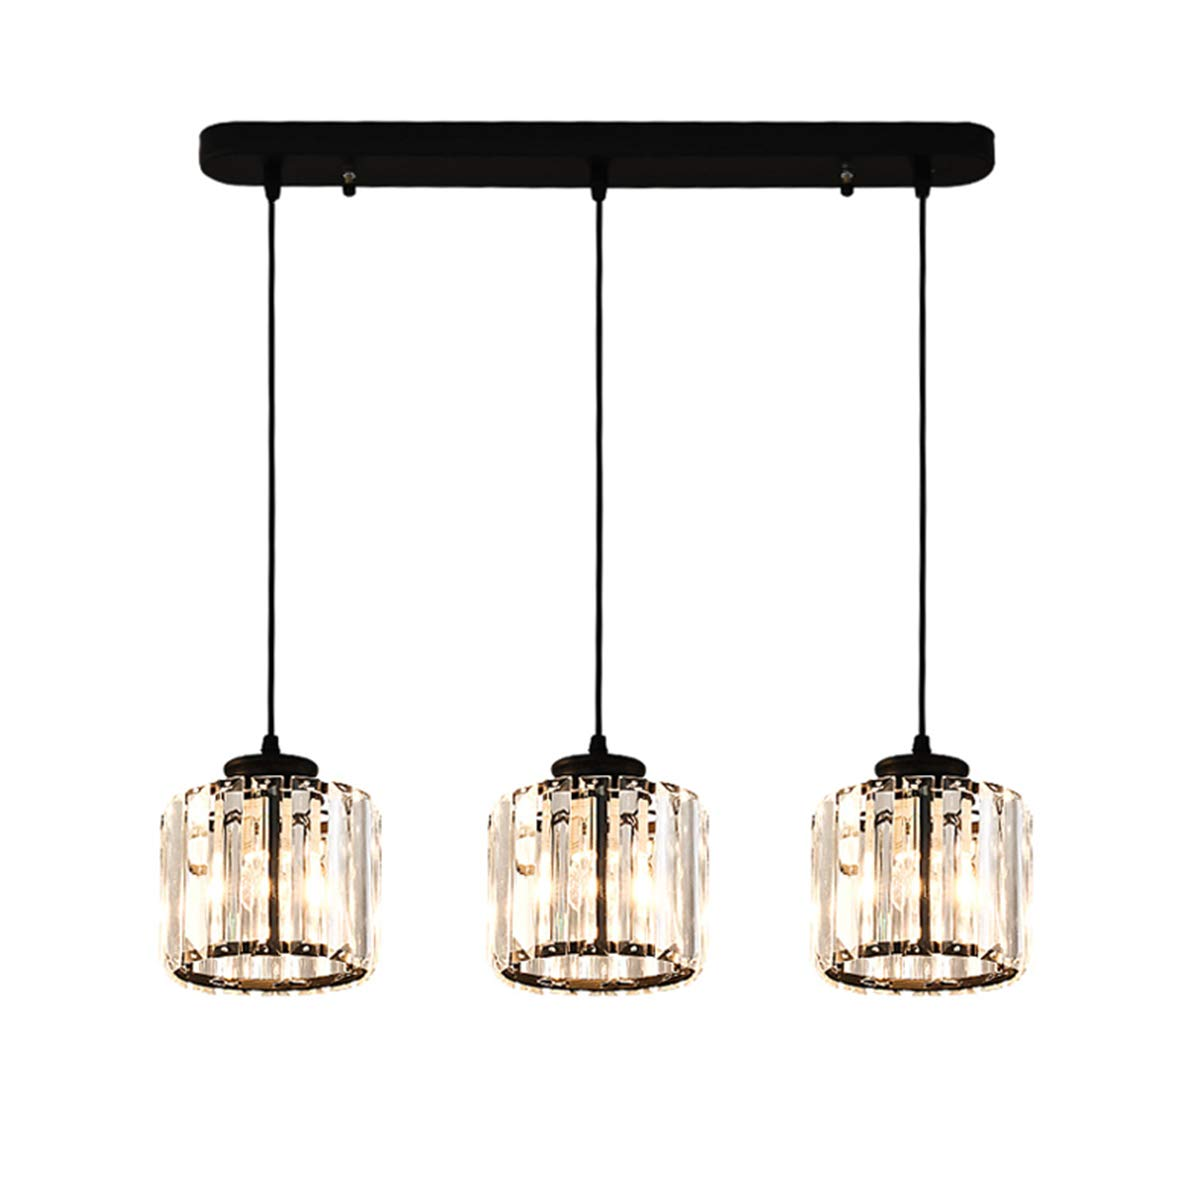 LHLYCLX 3 Light pendant lighting, Kitchen Island Light fixture Crystal Hanging Chandelier for Home Decoration (Bar) by LHLYCLX